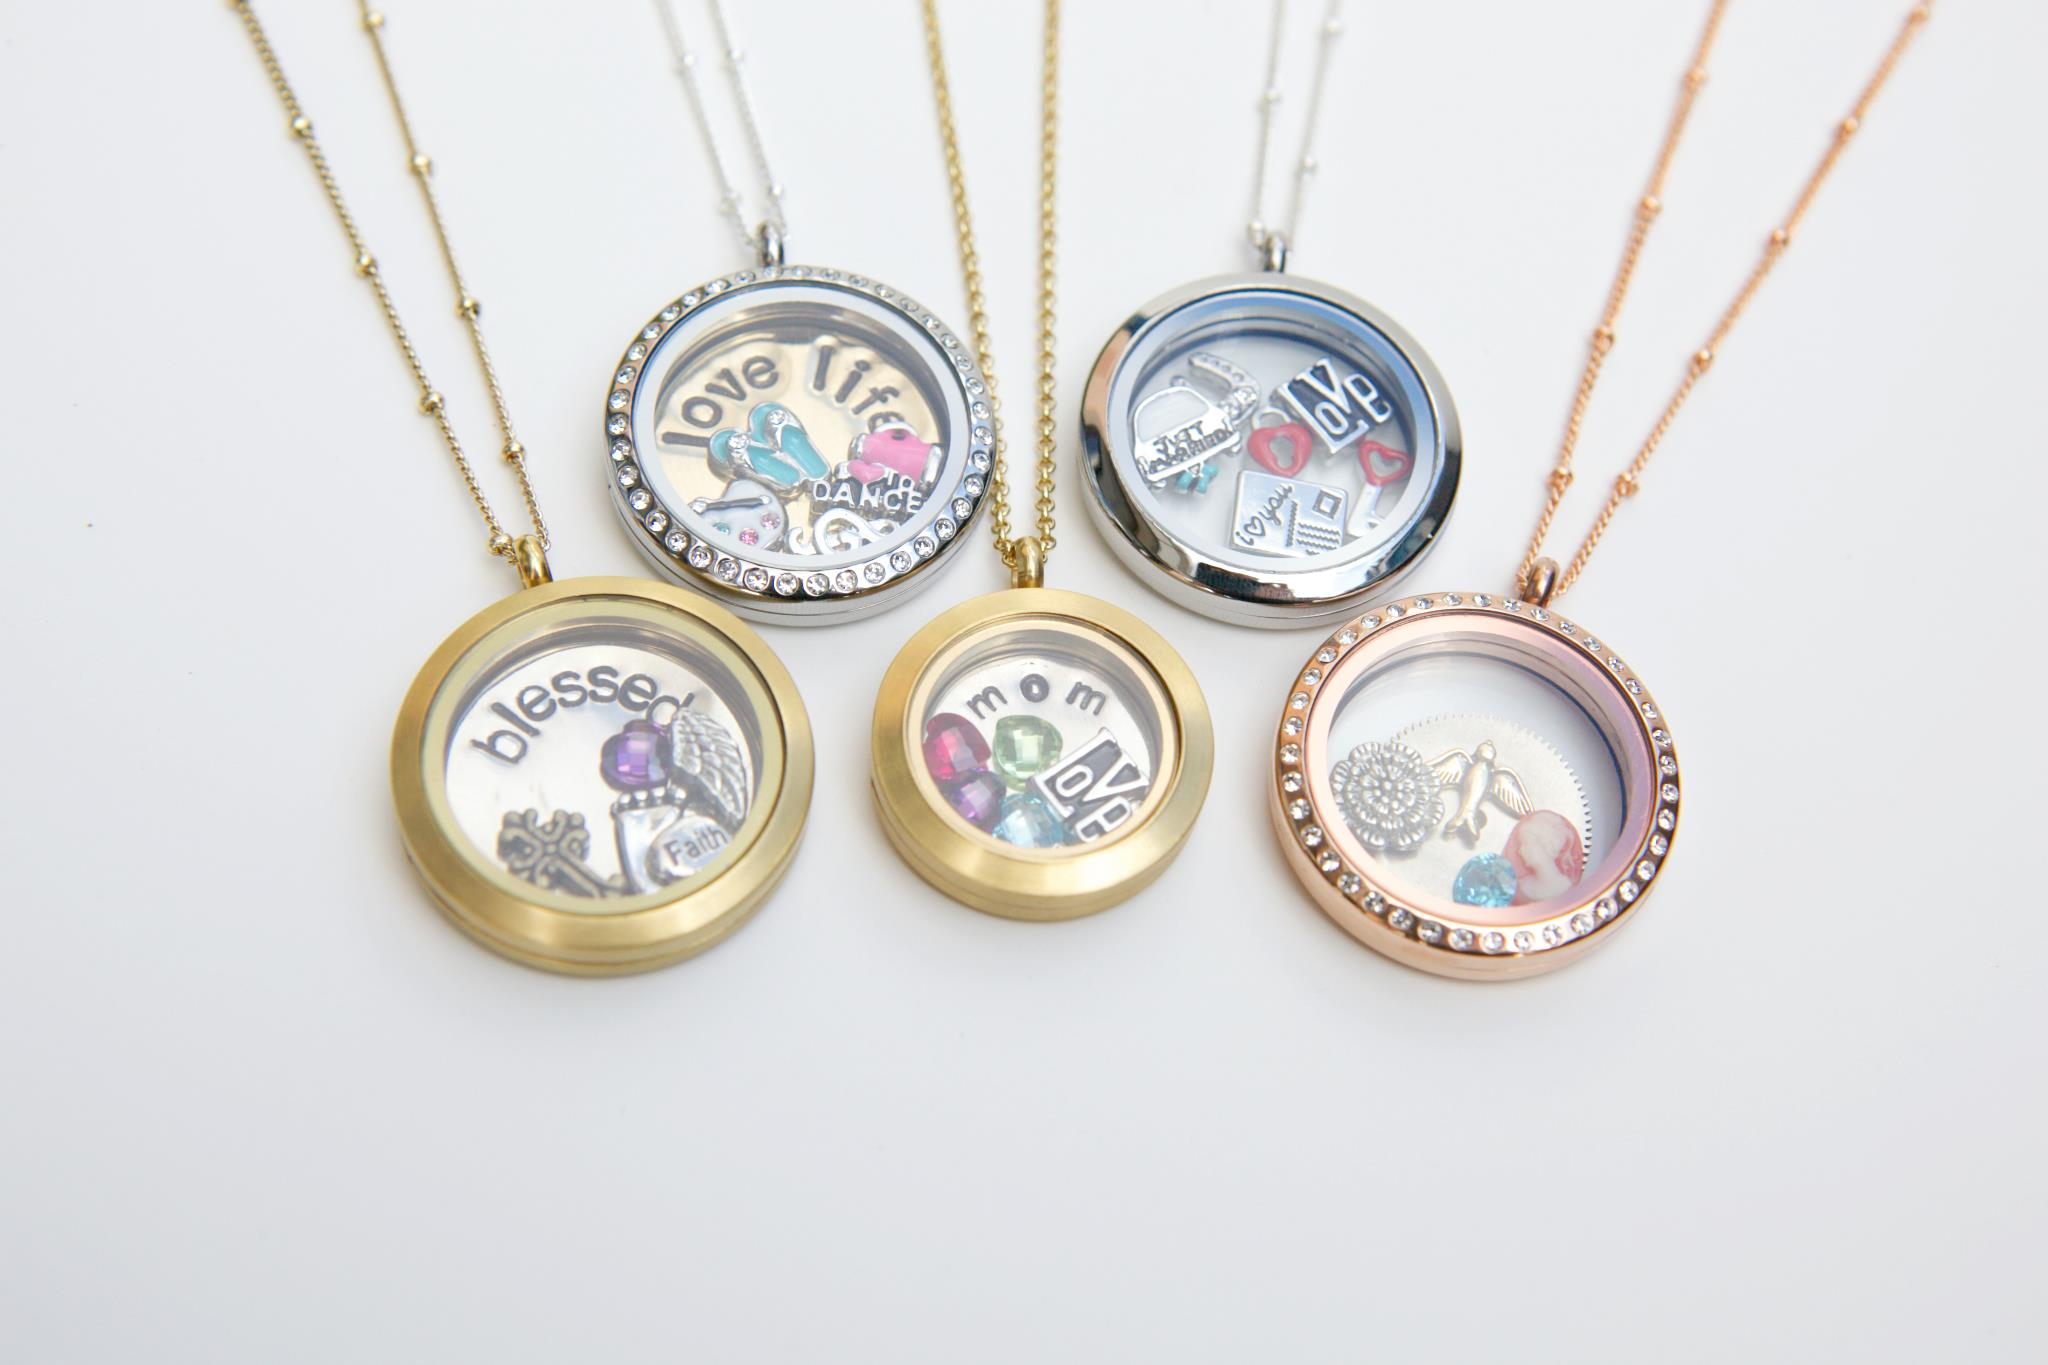 Buy Origami Owl™ Jewelry Online | Charms & Necklace Products - photo#5